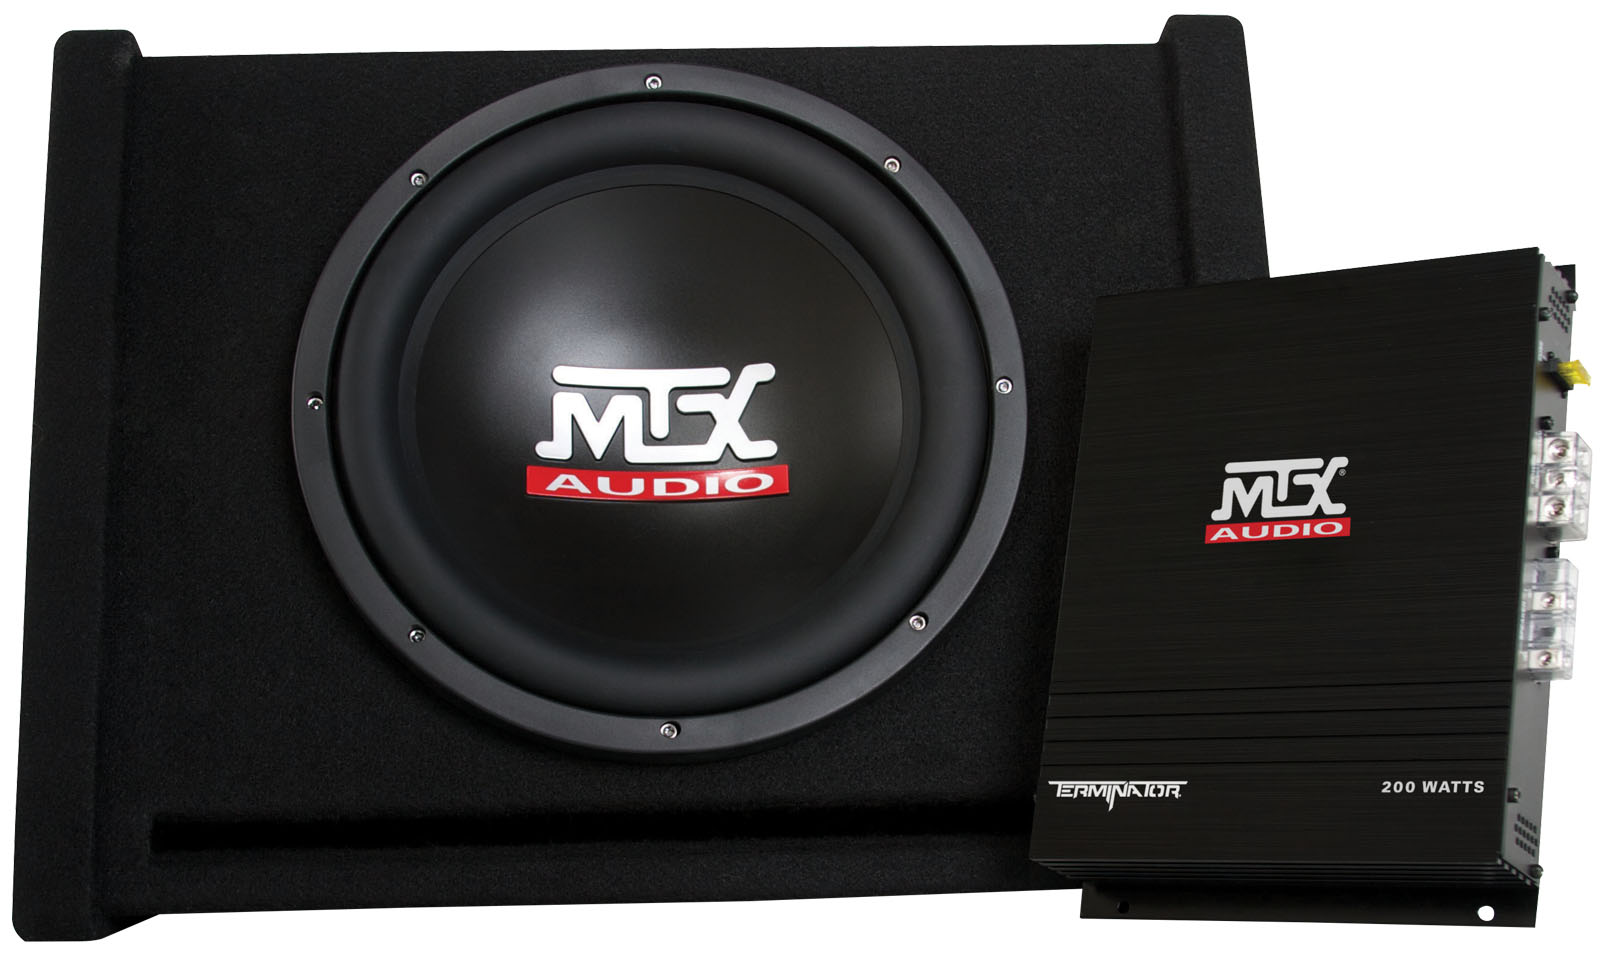 0004183_terminator tnp112d 12 inch 200w rms vented enclosure and mono block amplifier tnp112d mtx car subwoofer enclosure and amplifier mtx audio Terminator Time Loop Diagram at metegol.co